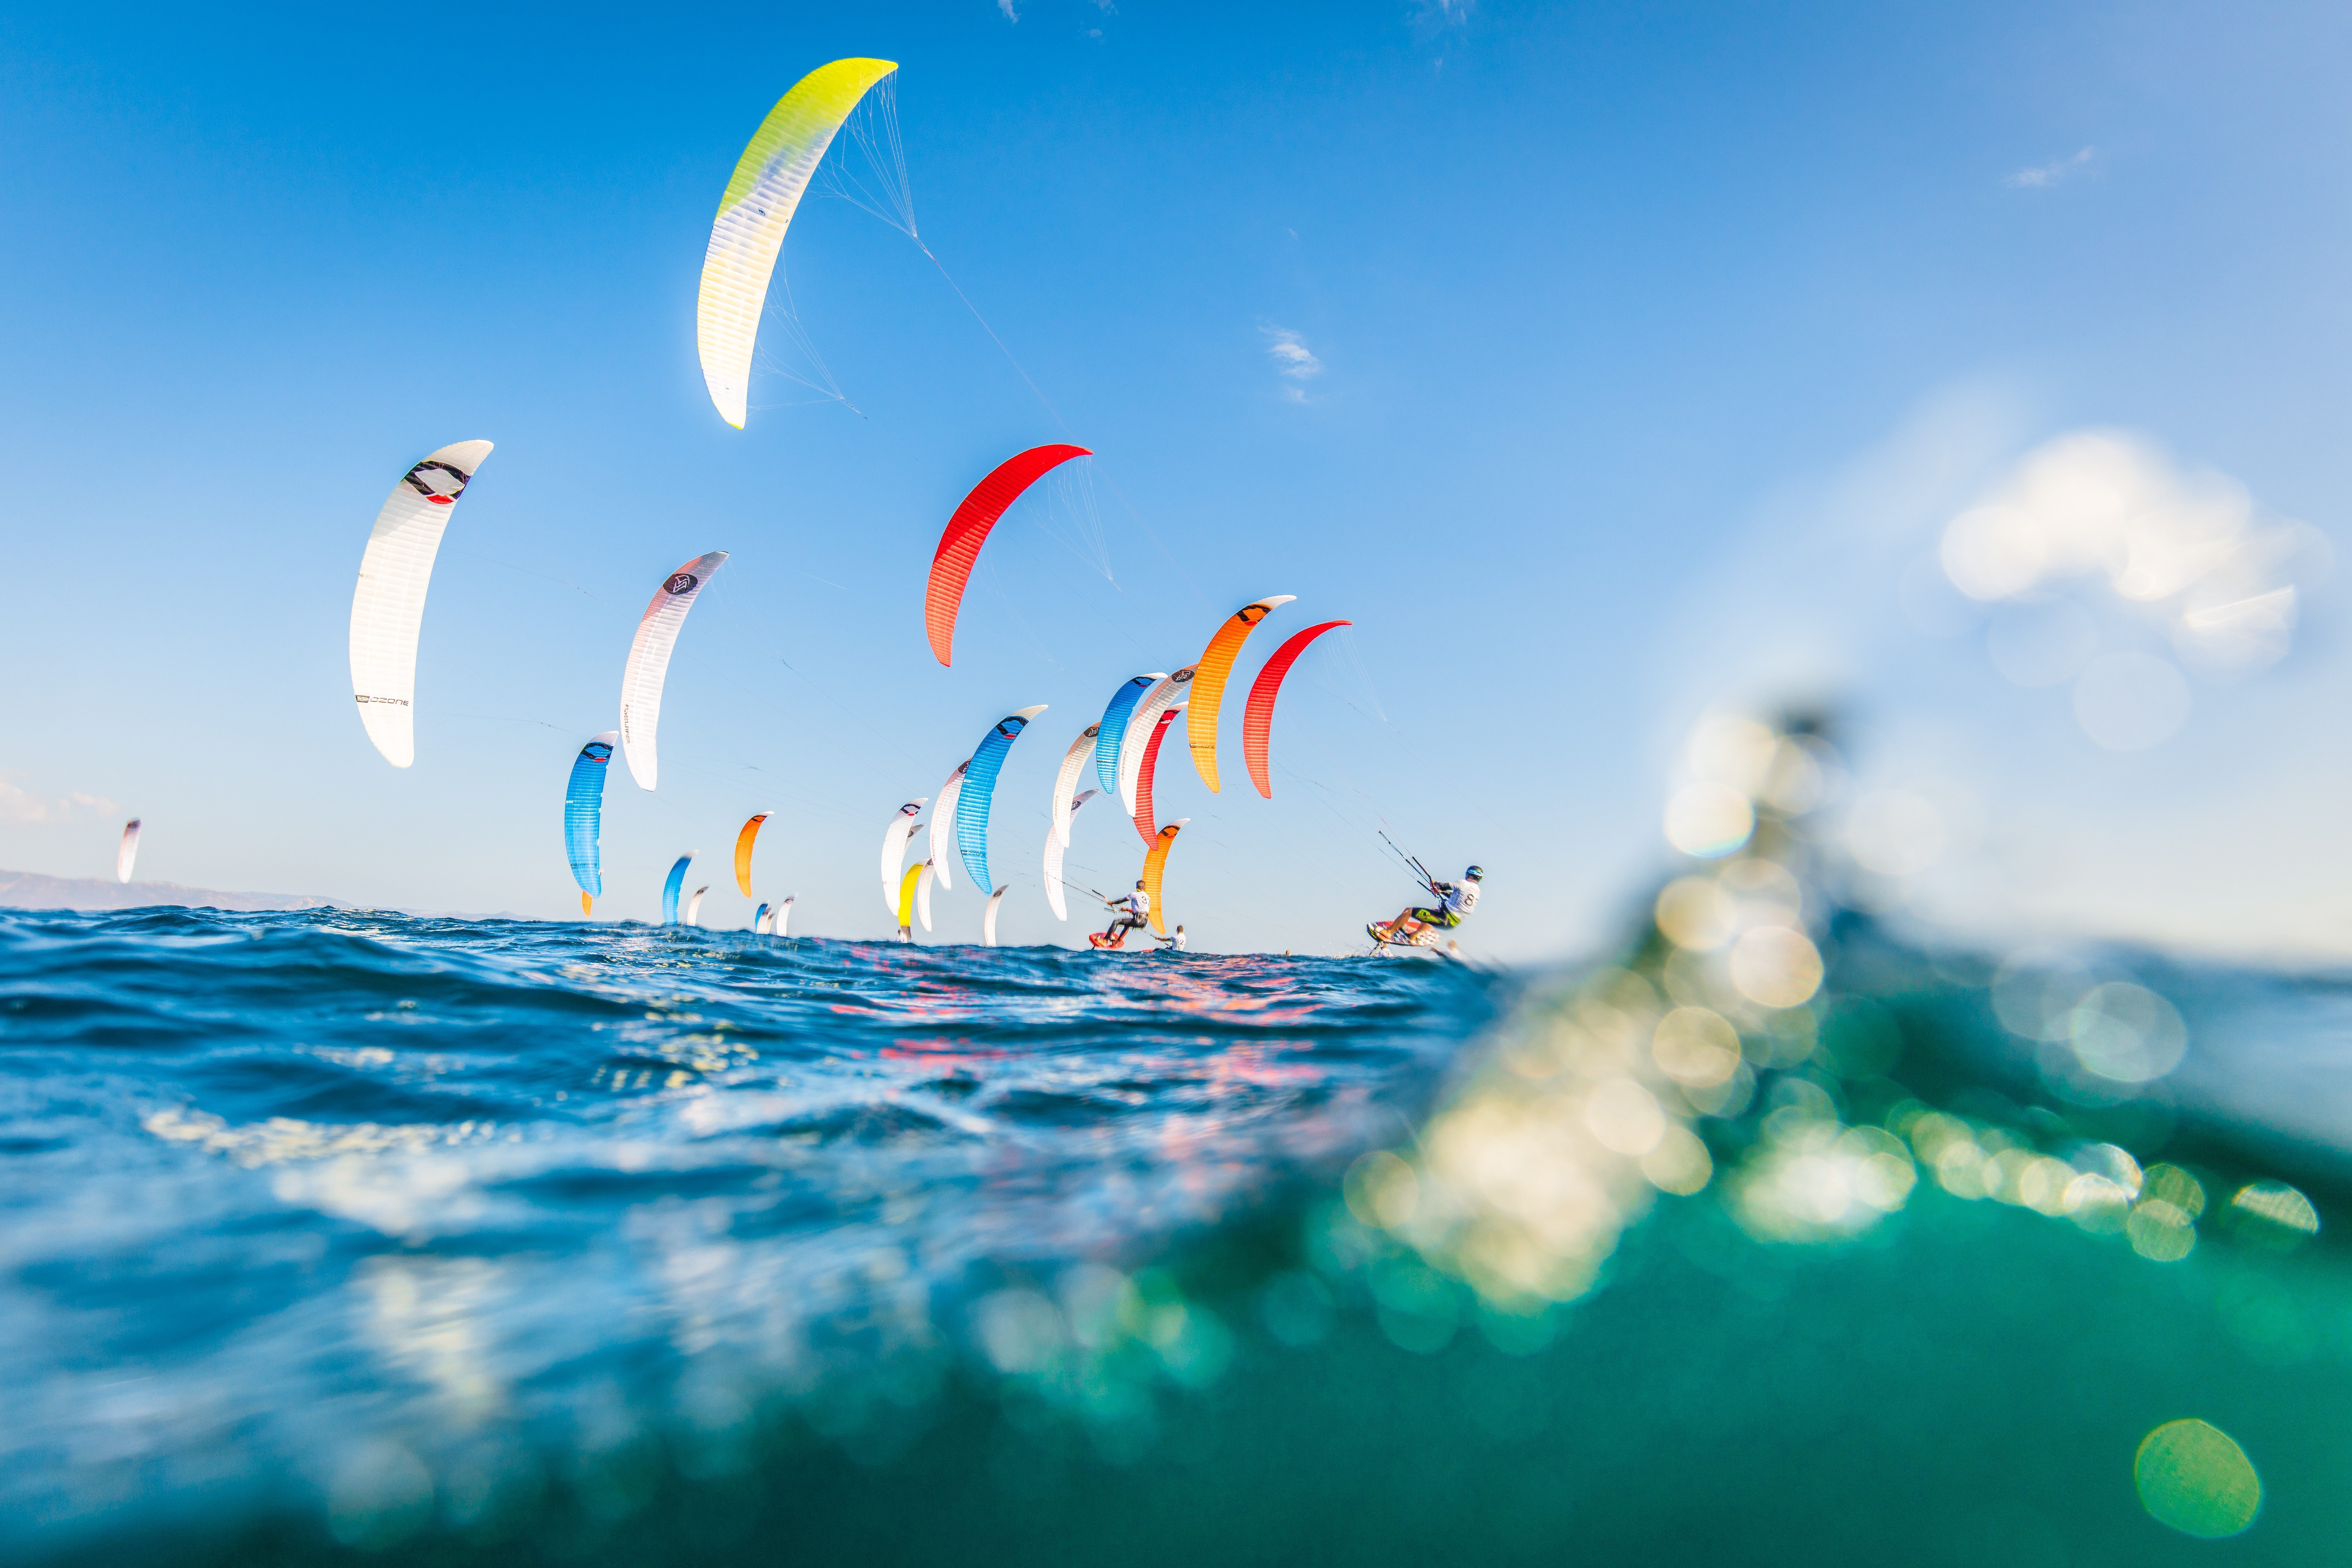 World's Leading KiteFoil Racers to Gather for Exhilarating Showdown in Oman